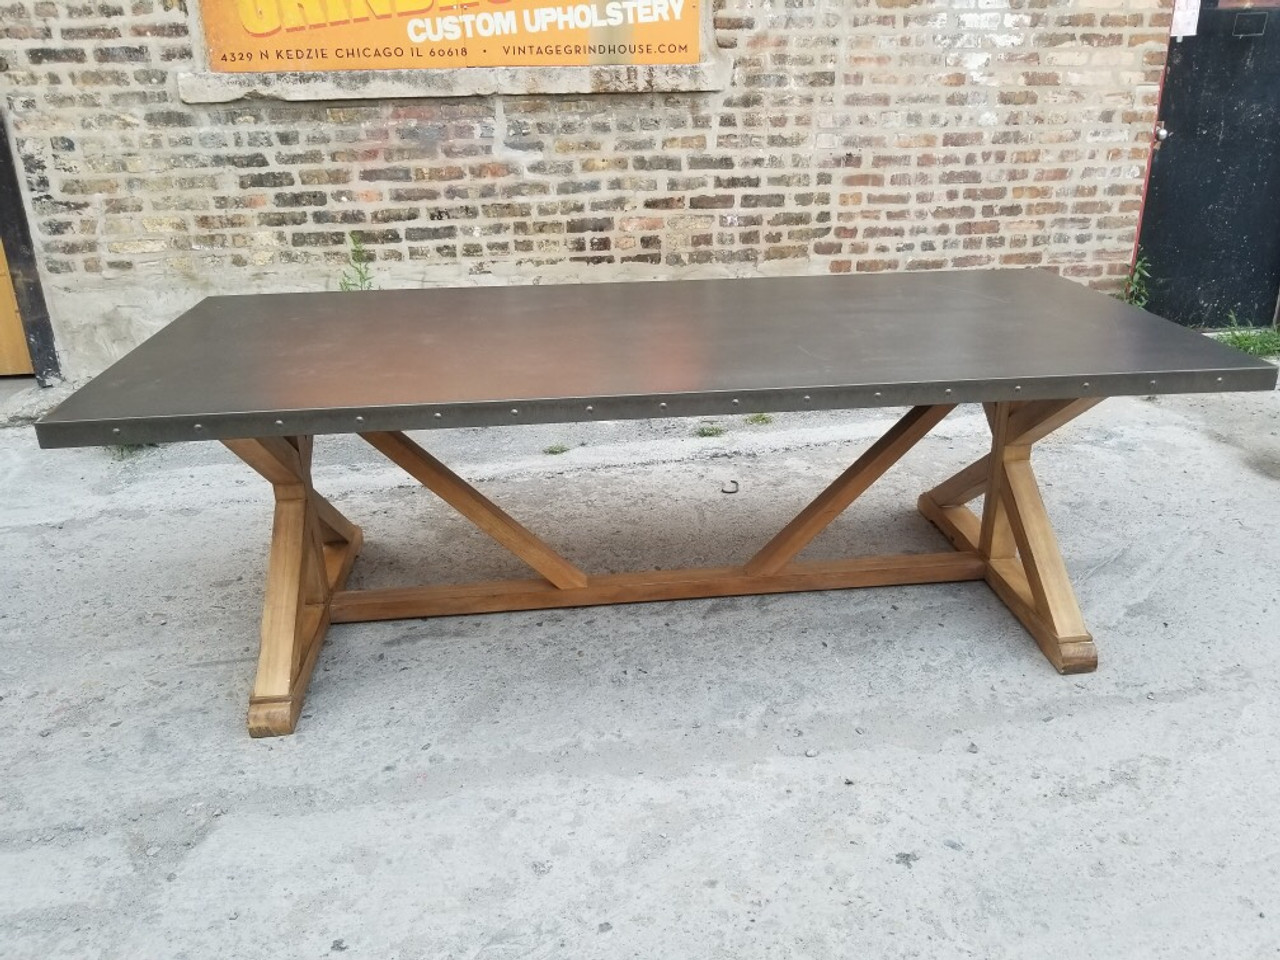 Restoration Hardware Style Riveted X Base Stainless Steel Top Dining Table Vintage Grind House